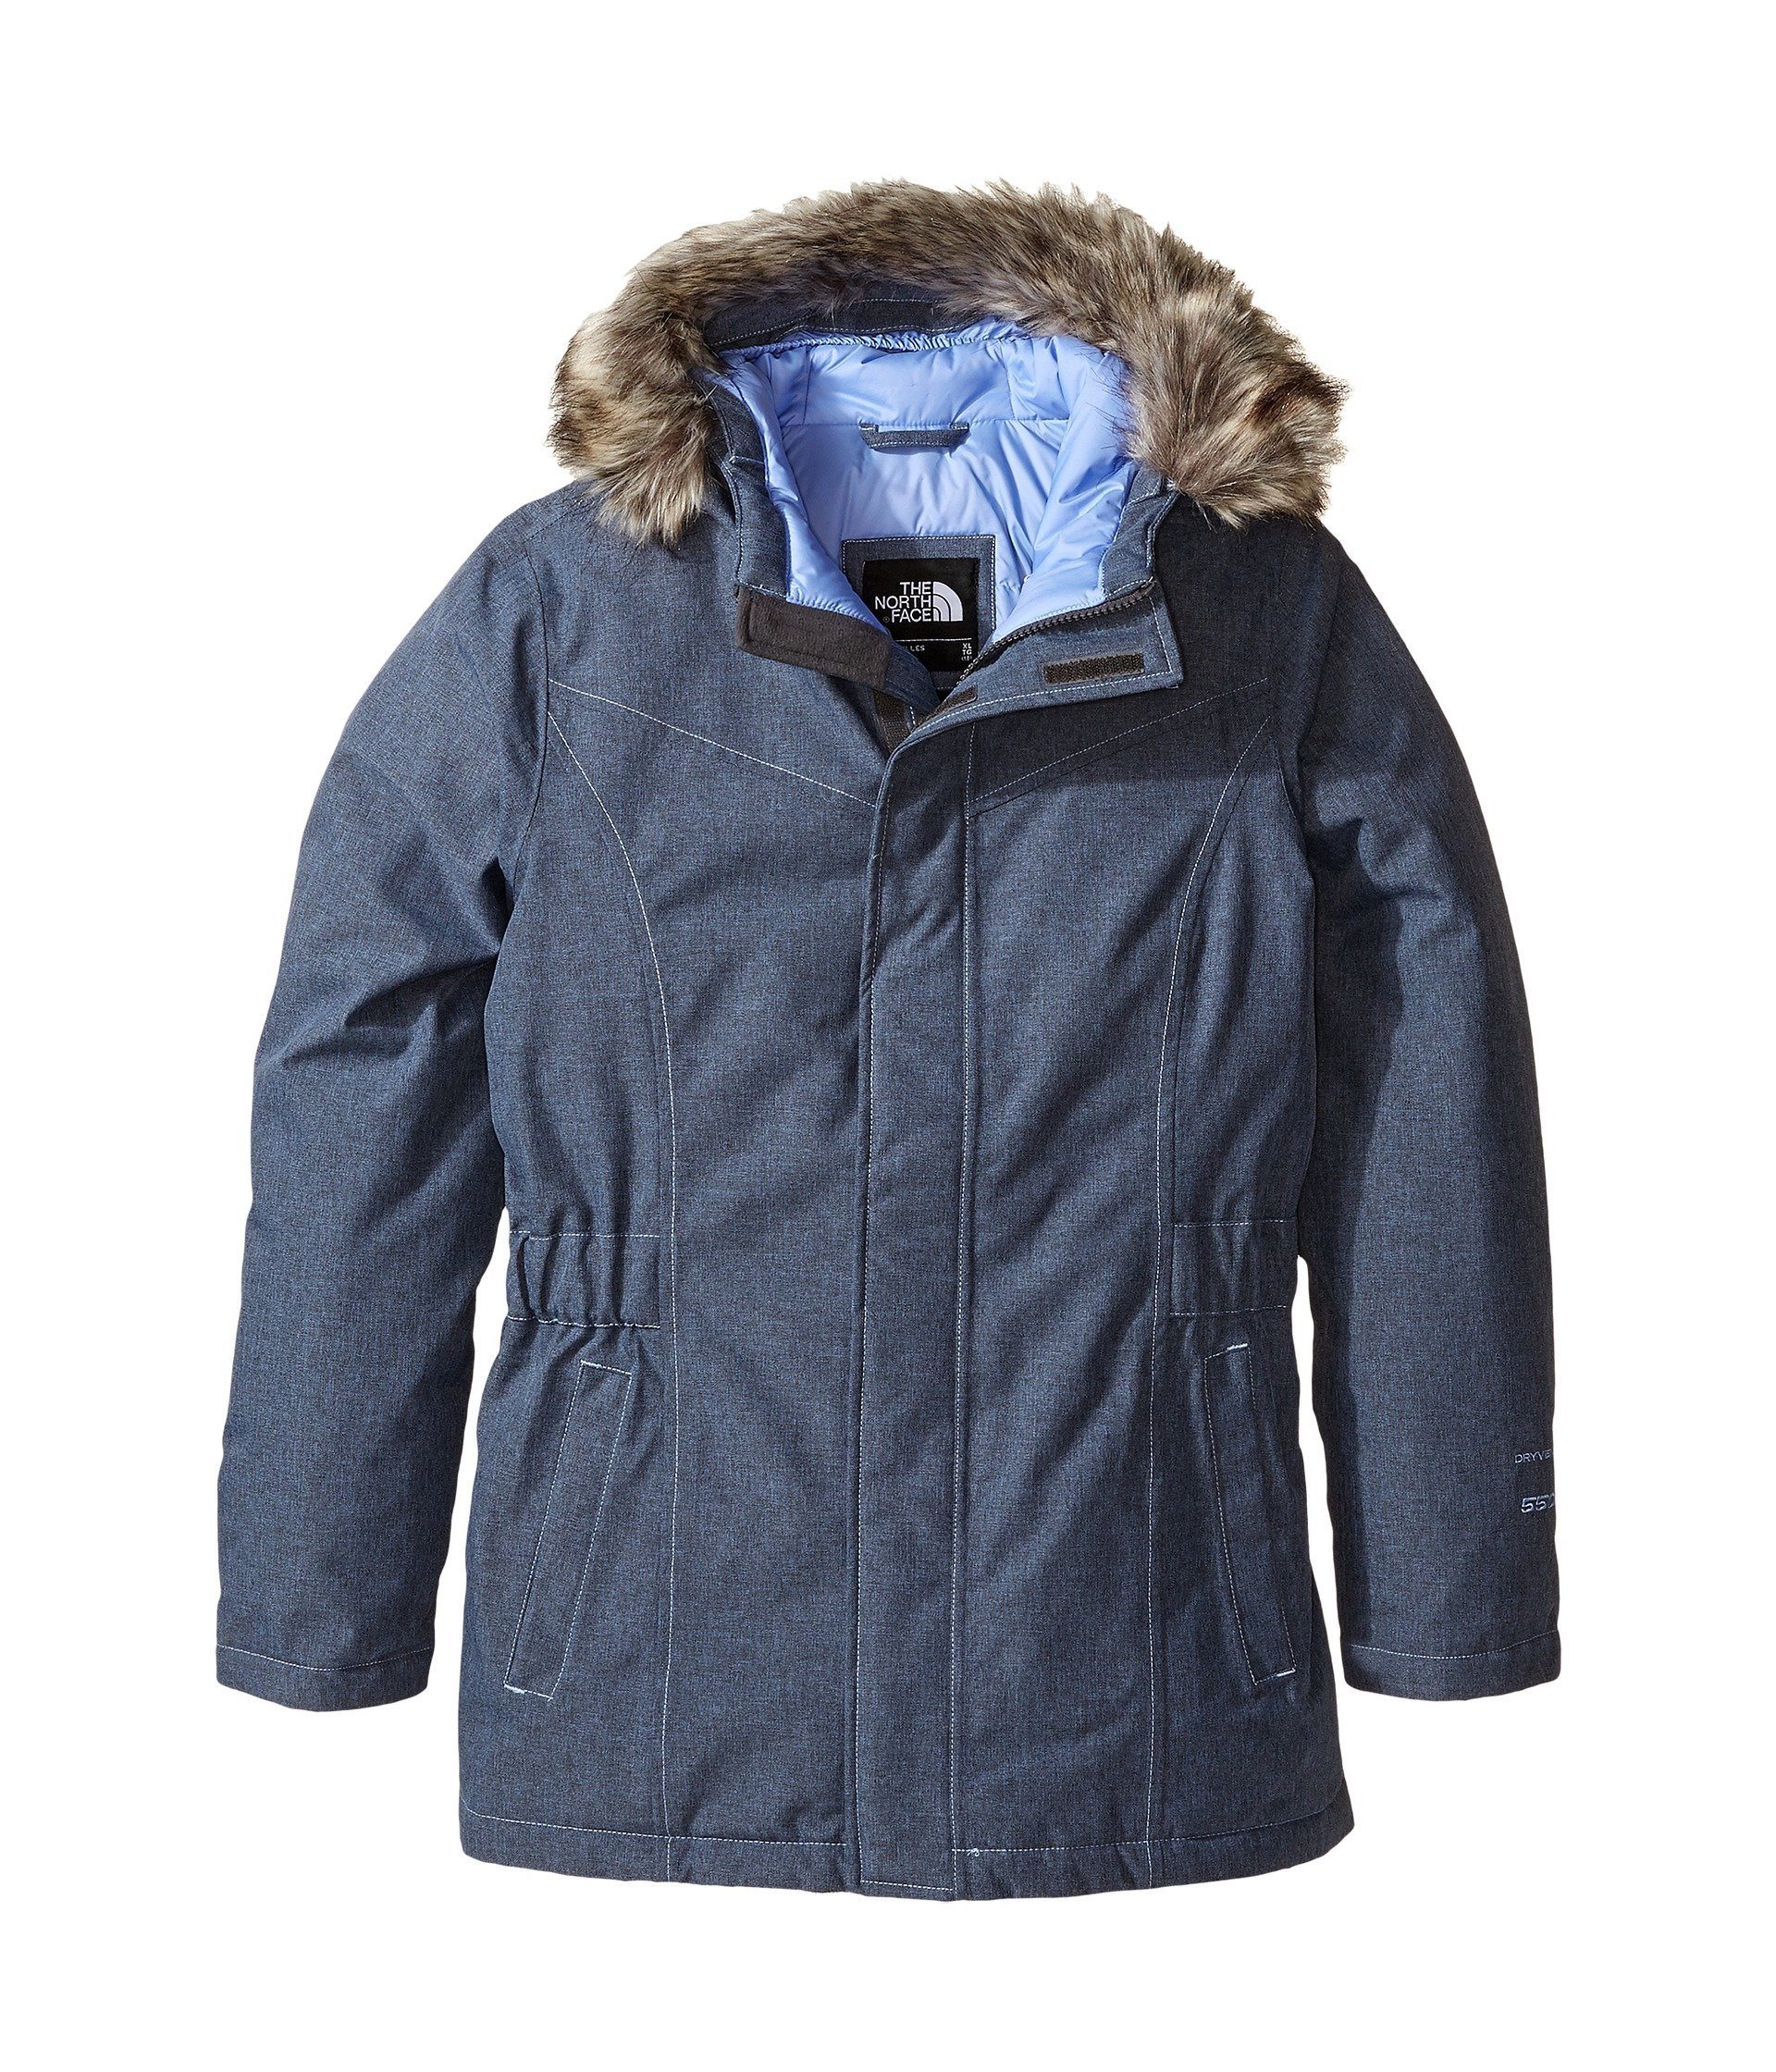 The North Face Greenland Down Parka Jacket Grapemist Blue Heather Girls L